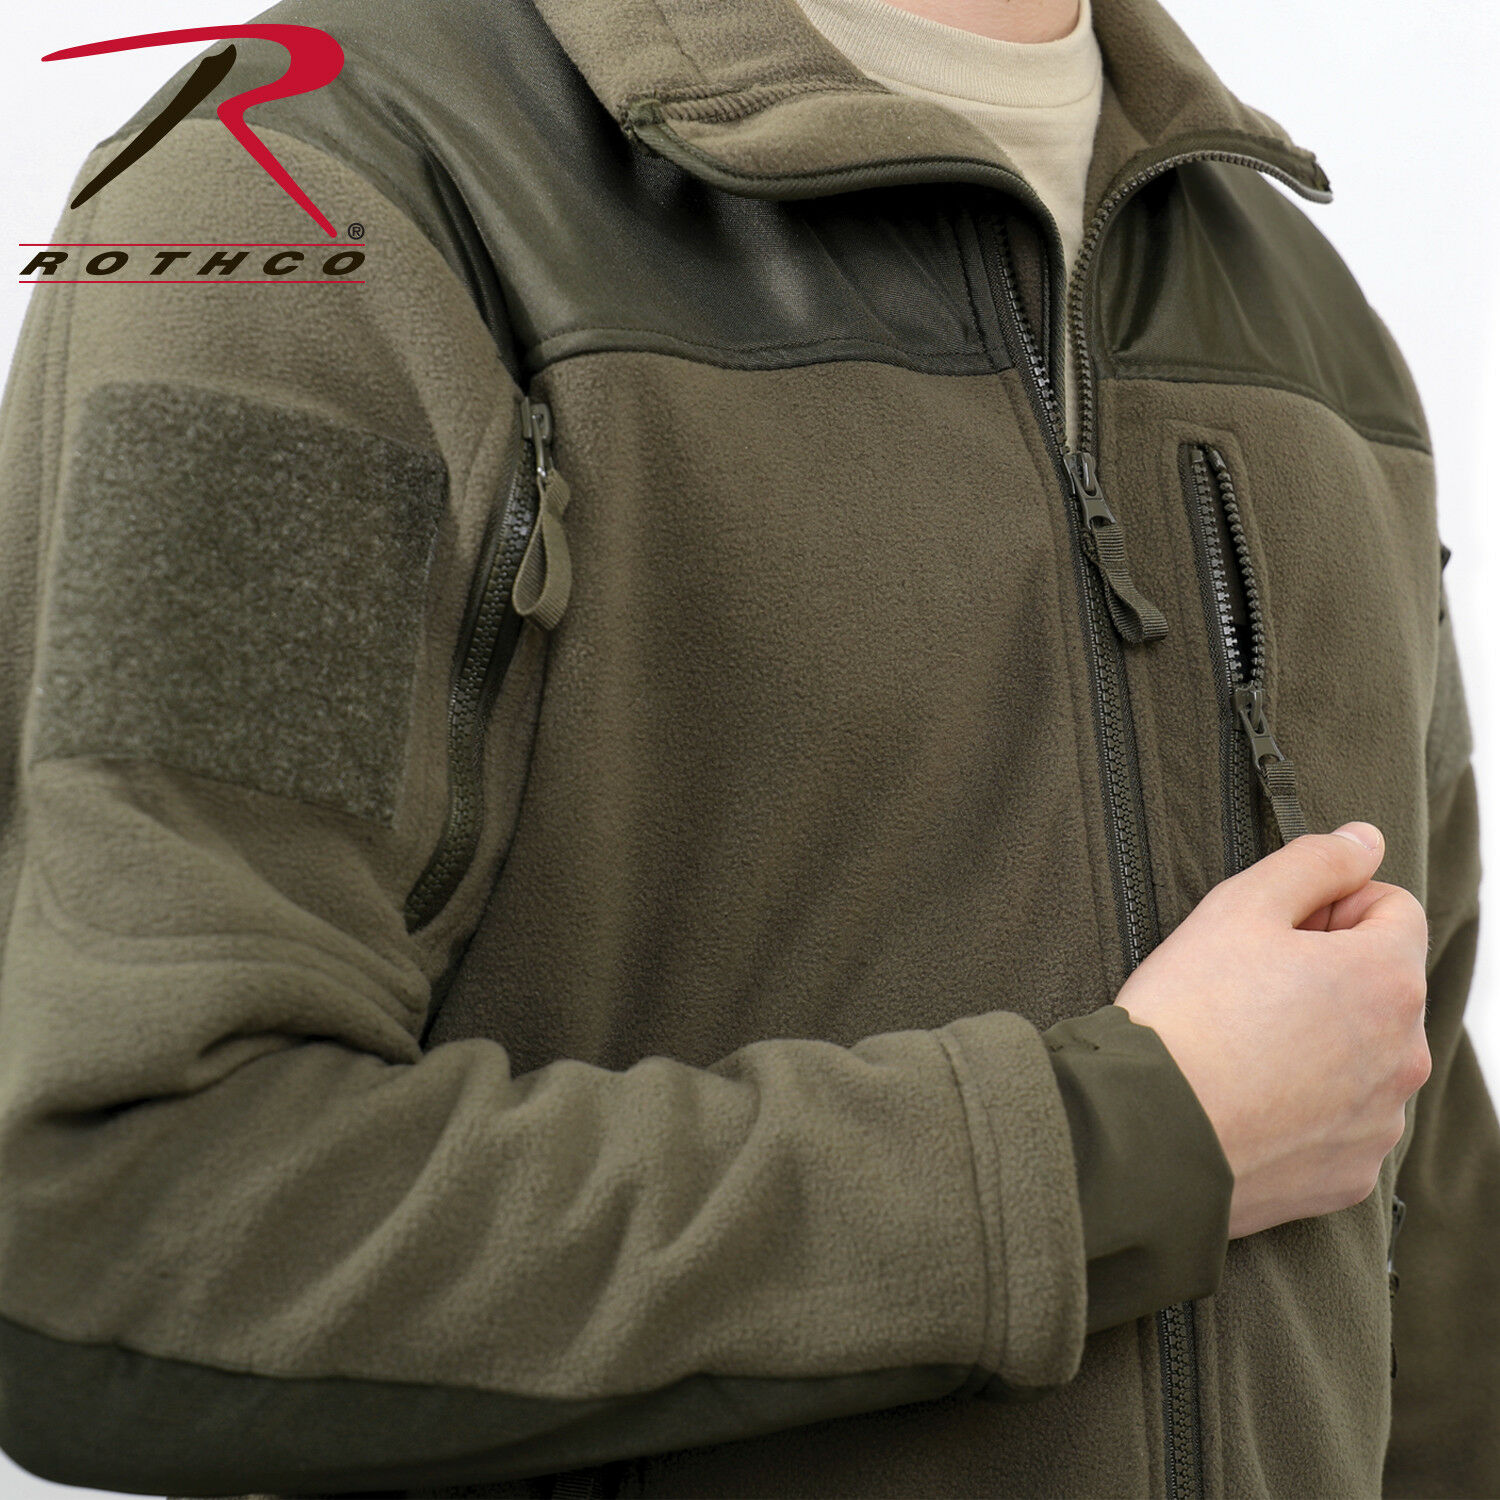 Spec Ops Tactical Fleece Jacket Full Zip Military Army Uniform Sports Top Coat